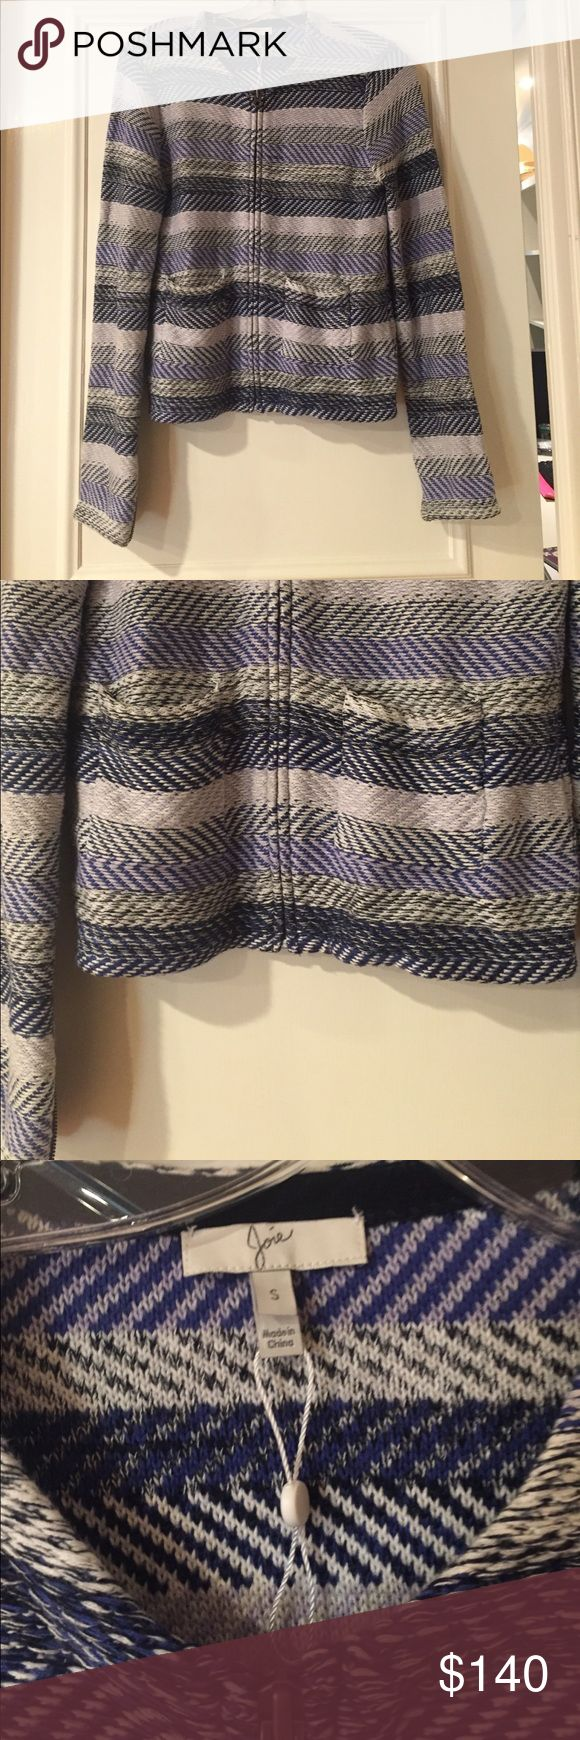 Joie NWOT Blue Striped Zip Cotton Sweater You have to feel how soft and comfy this is in real life. Center zip up closure with zipper detail on sleeves. Size small, never worn. Joie Sweaters